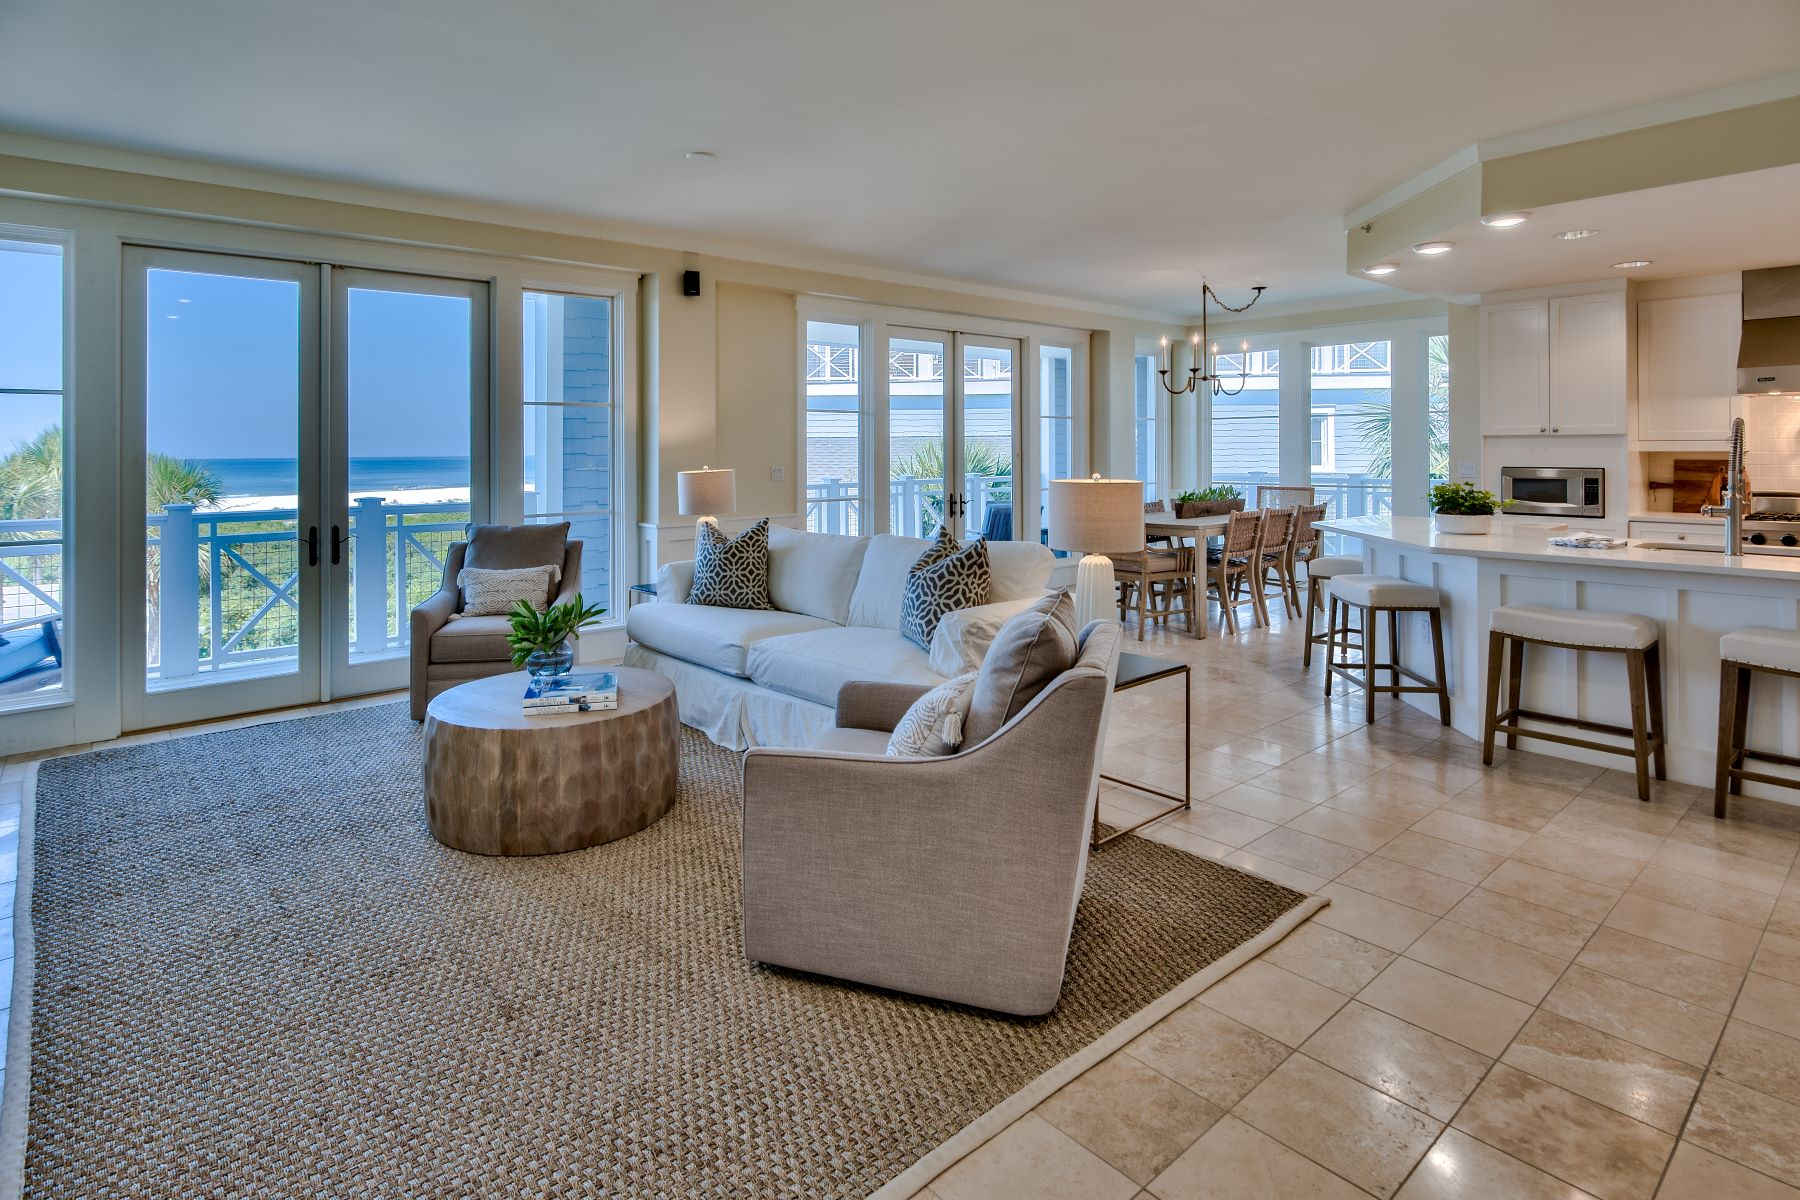 Condominiums for Active at Three Bedroom Condo in WaterSound Beach with Gulf Views 337 Bridge Lane South B313 Watersound, Florida 32461 United States